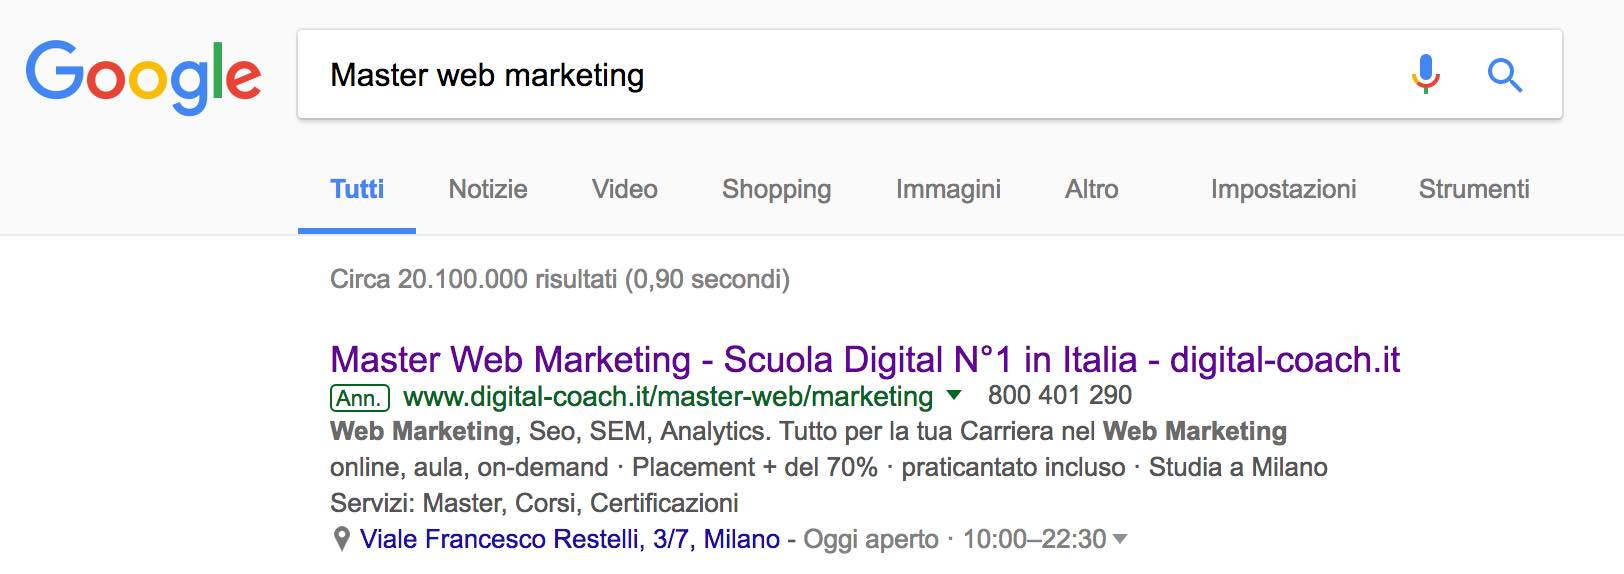 SERP query adwords